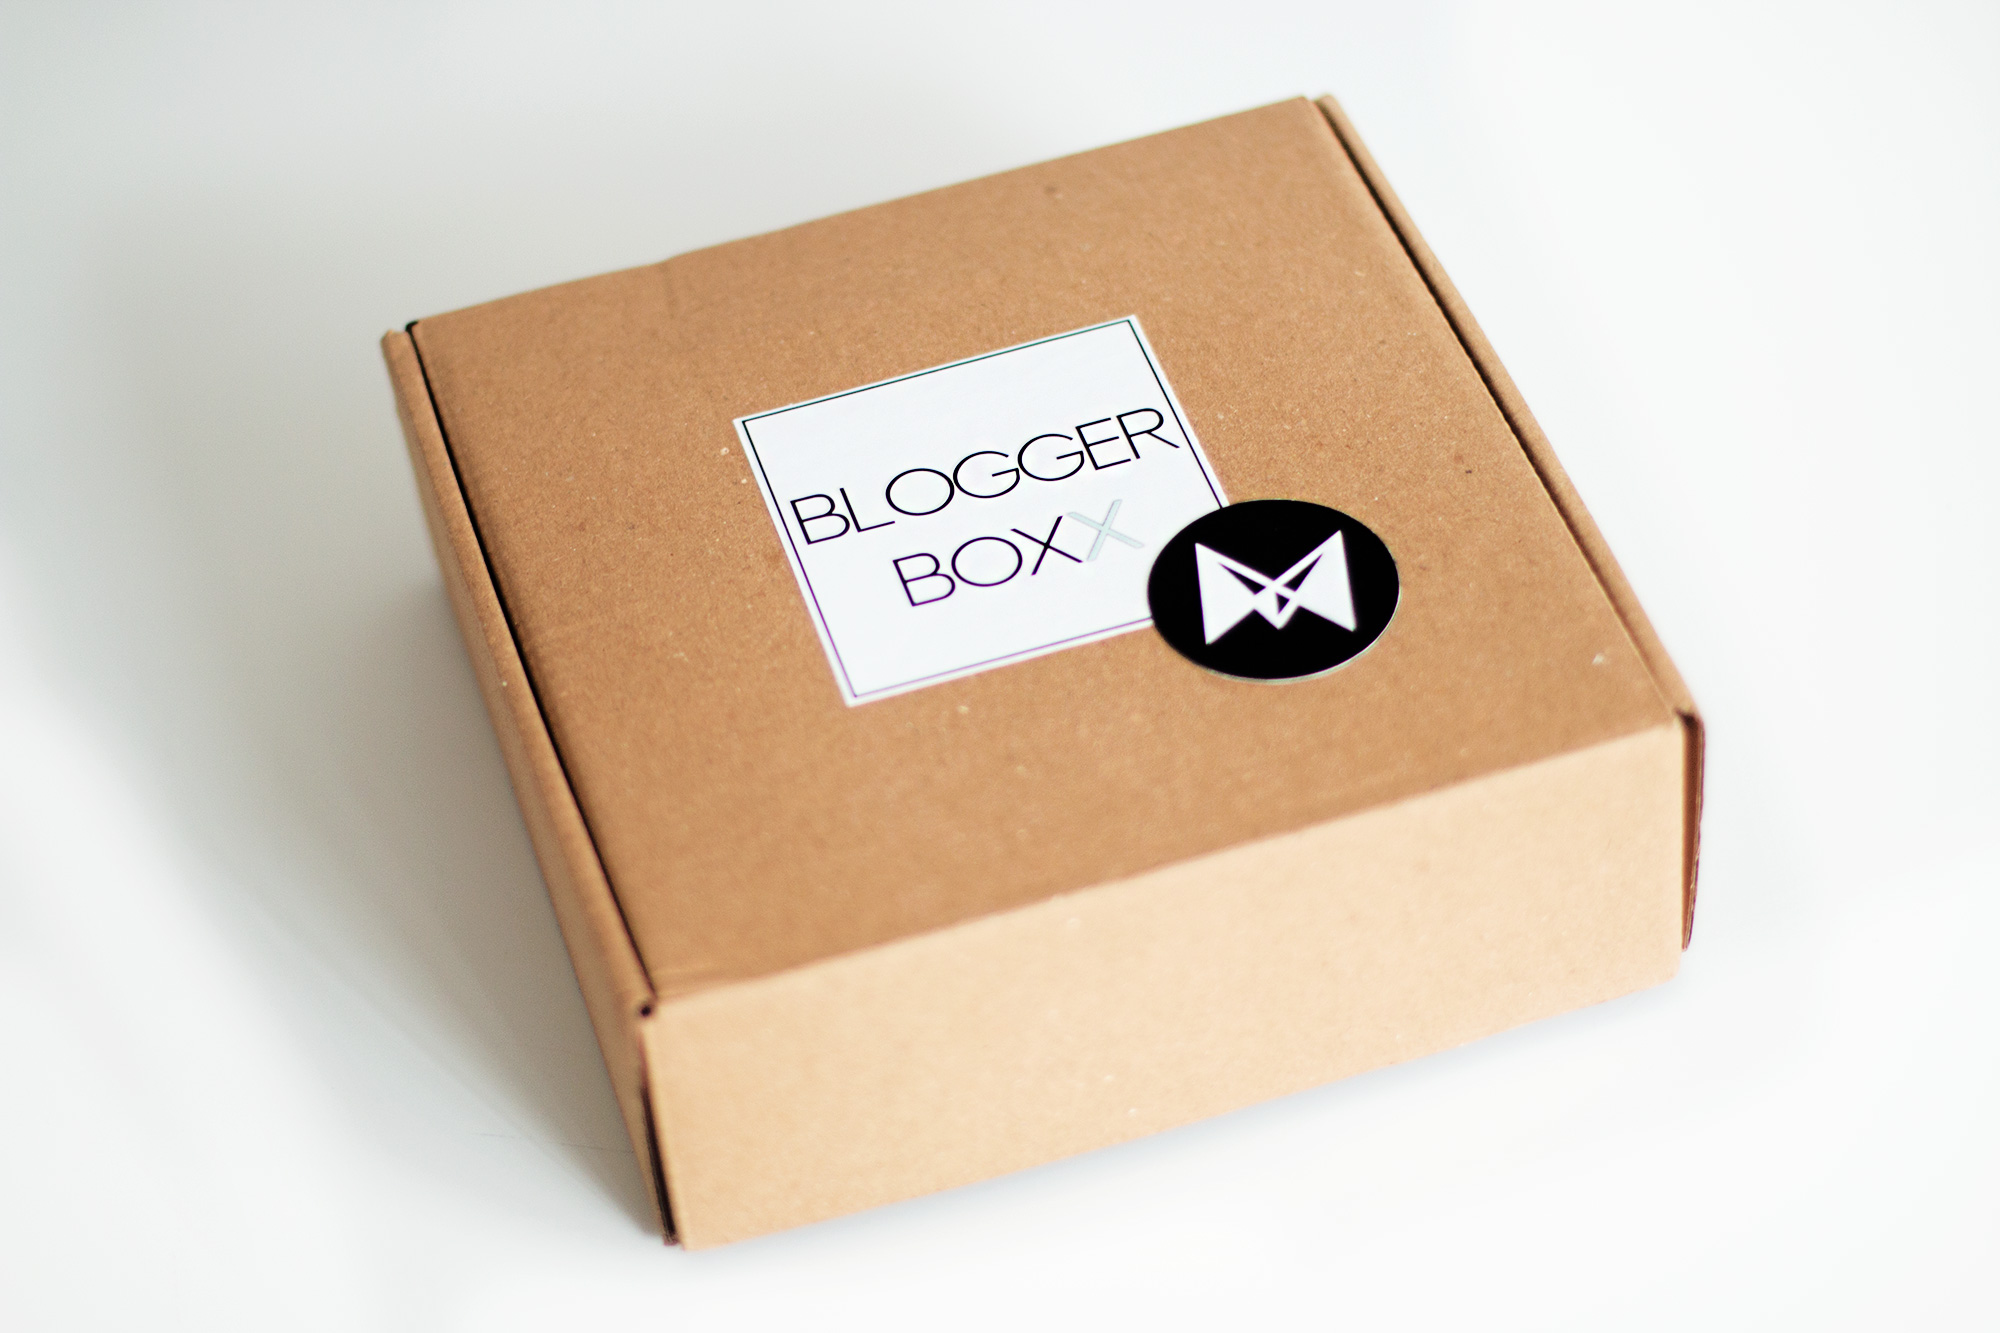 Blogger-Box-Masha-12